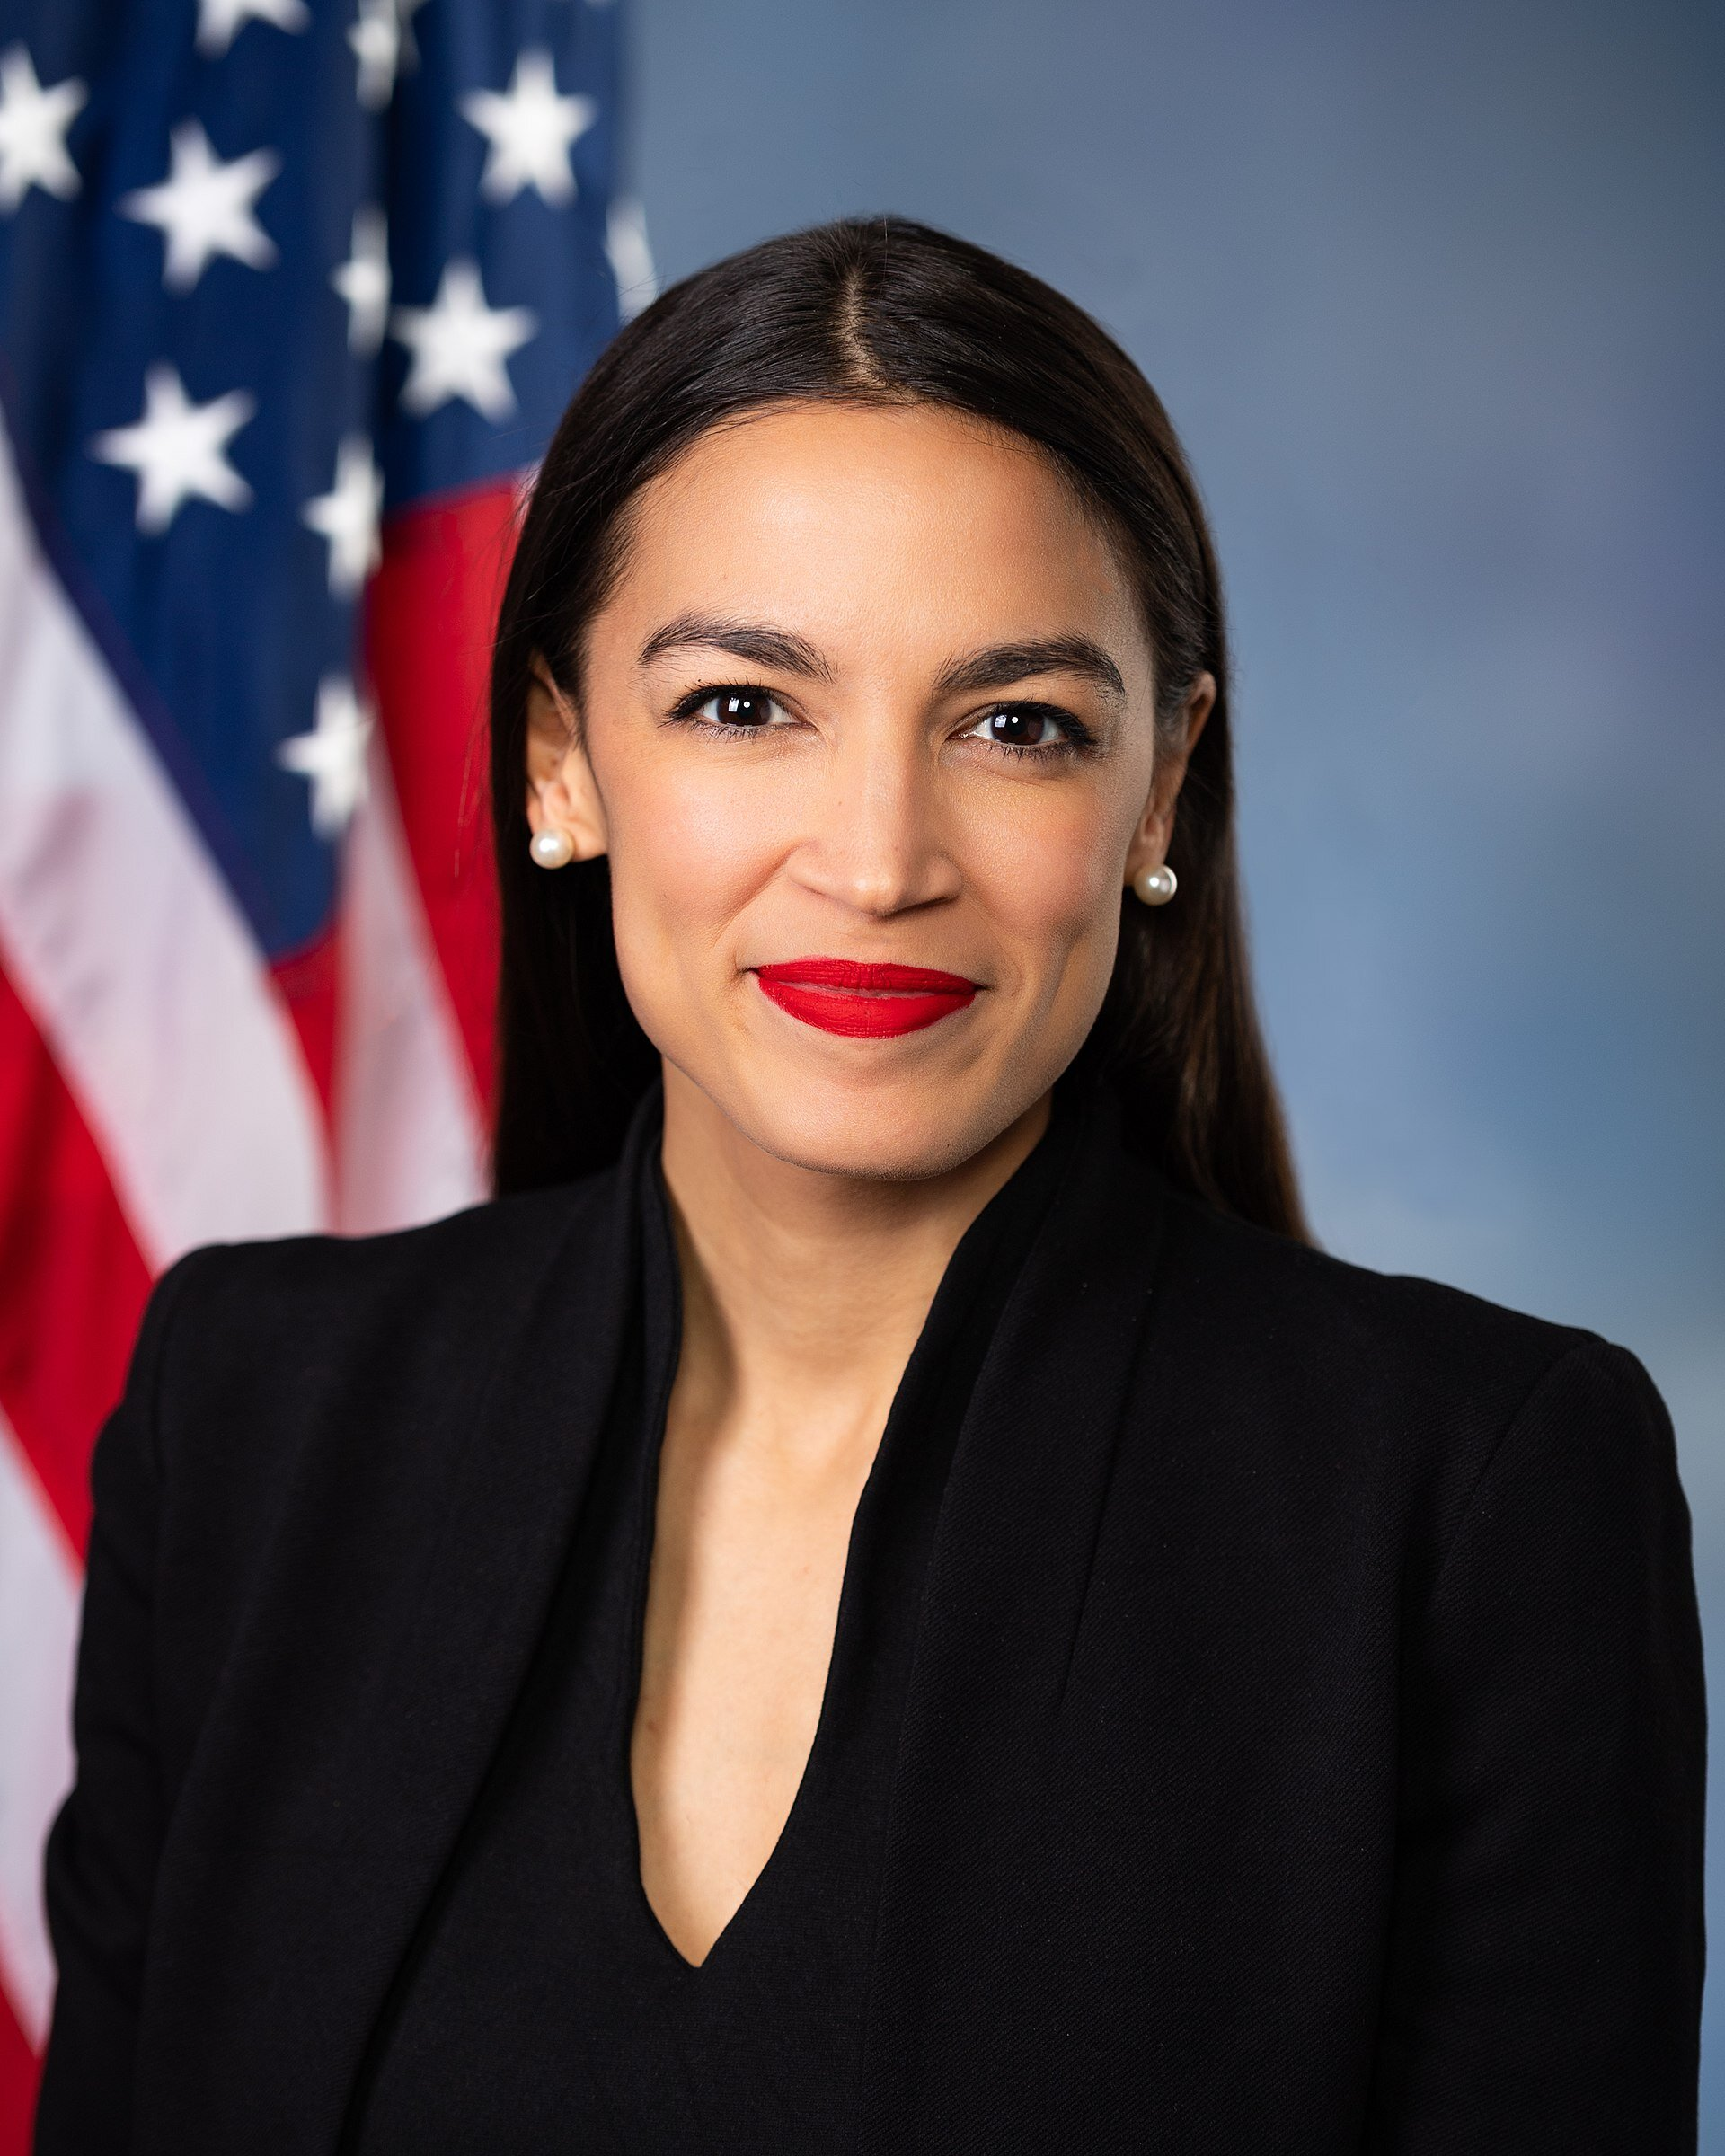 Photo by US House of Representatives - https://ocasio-cortez.house.gov/about, Public Domain, https://commons.wikimedia.org/w/index.php?curid=75556027